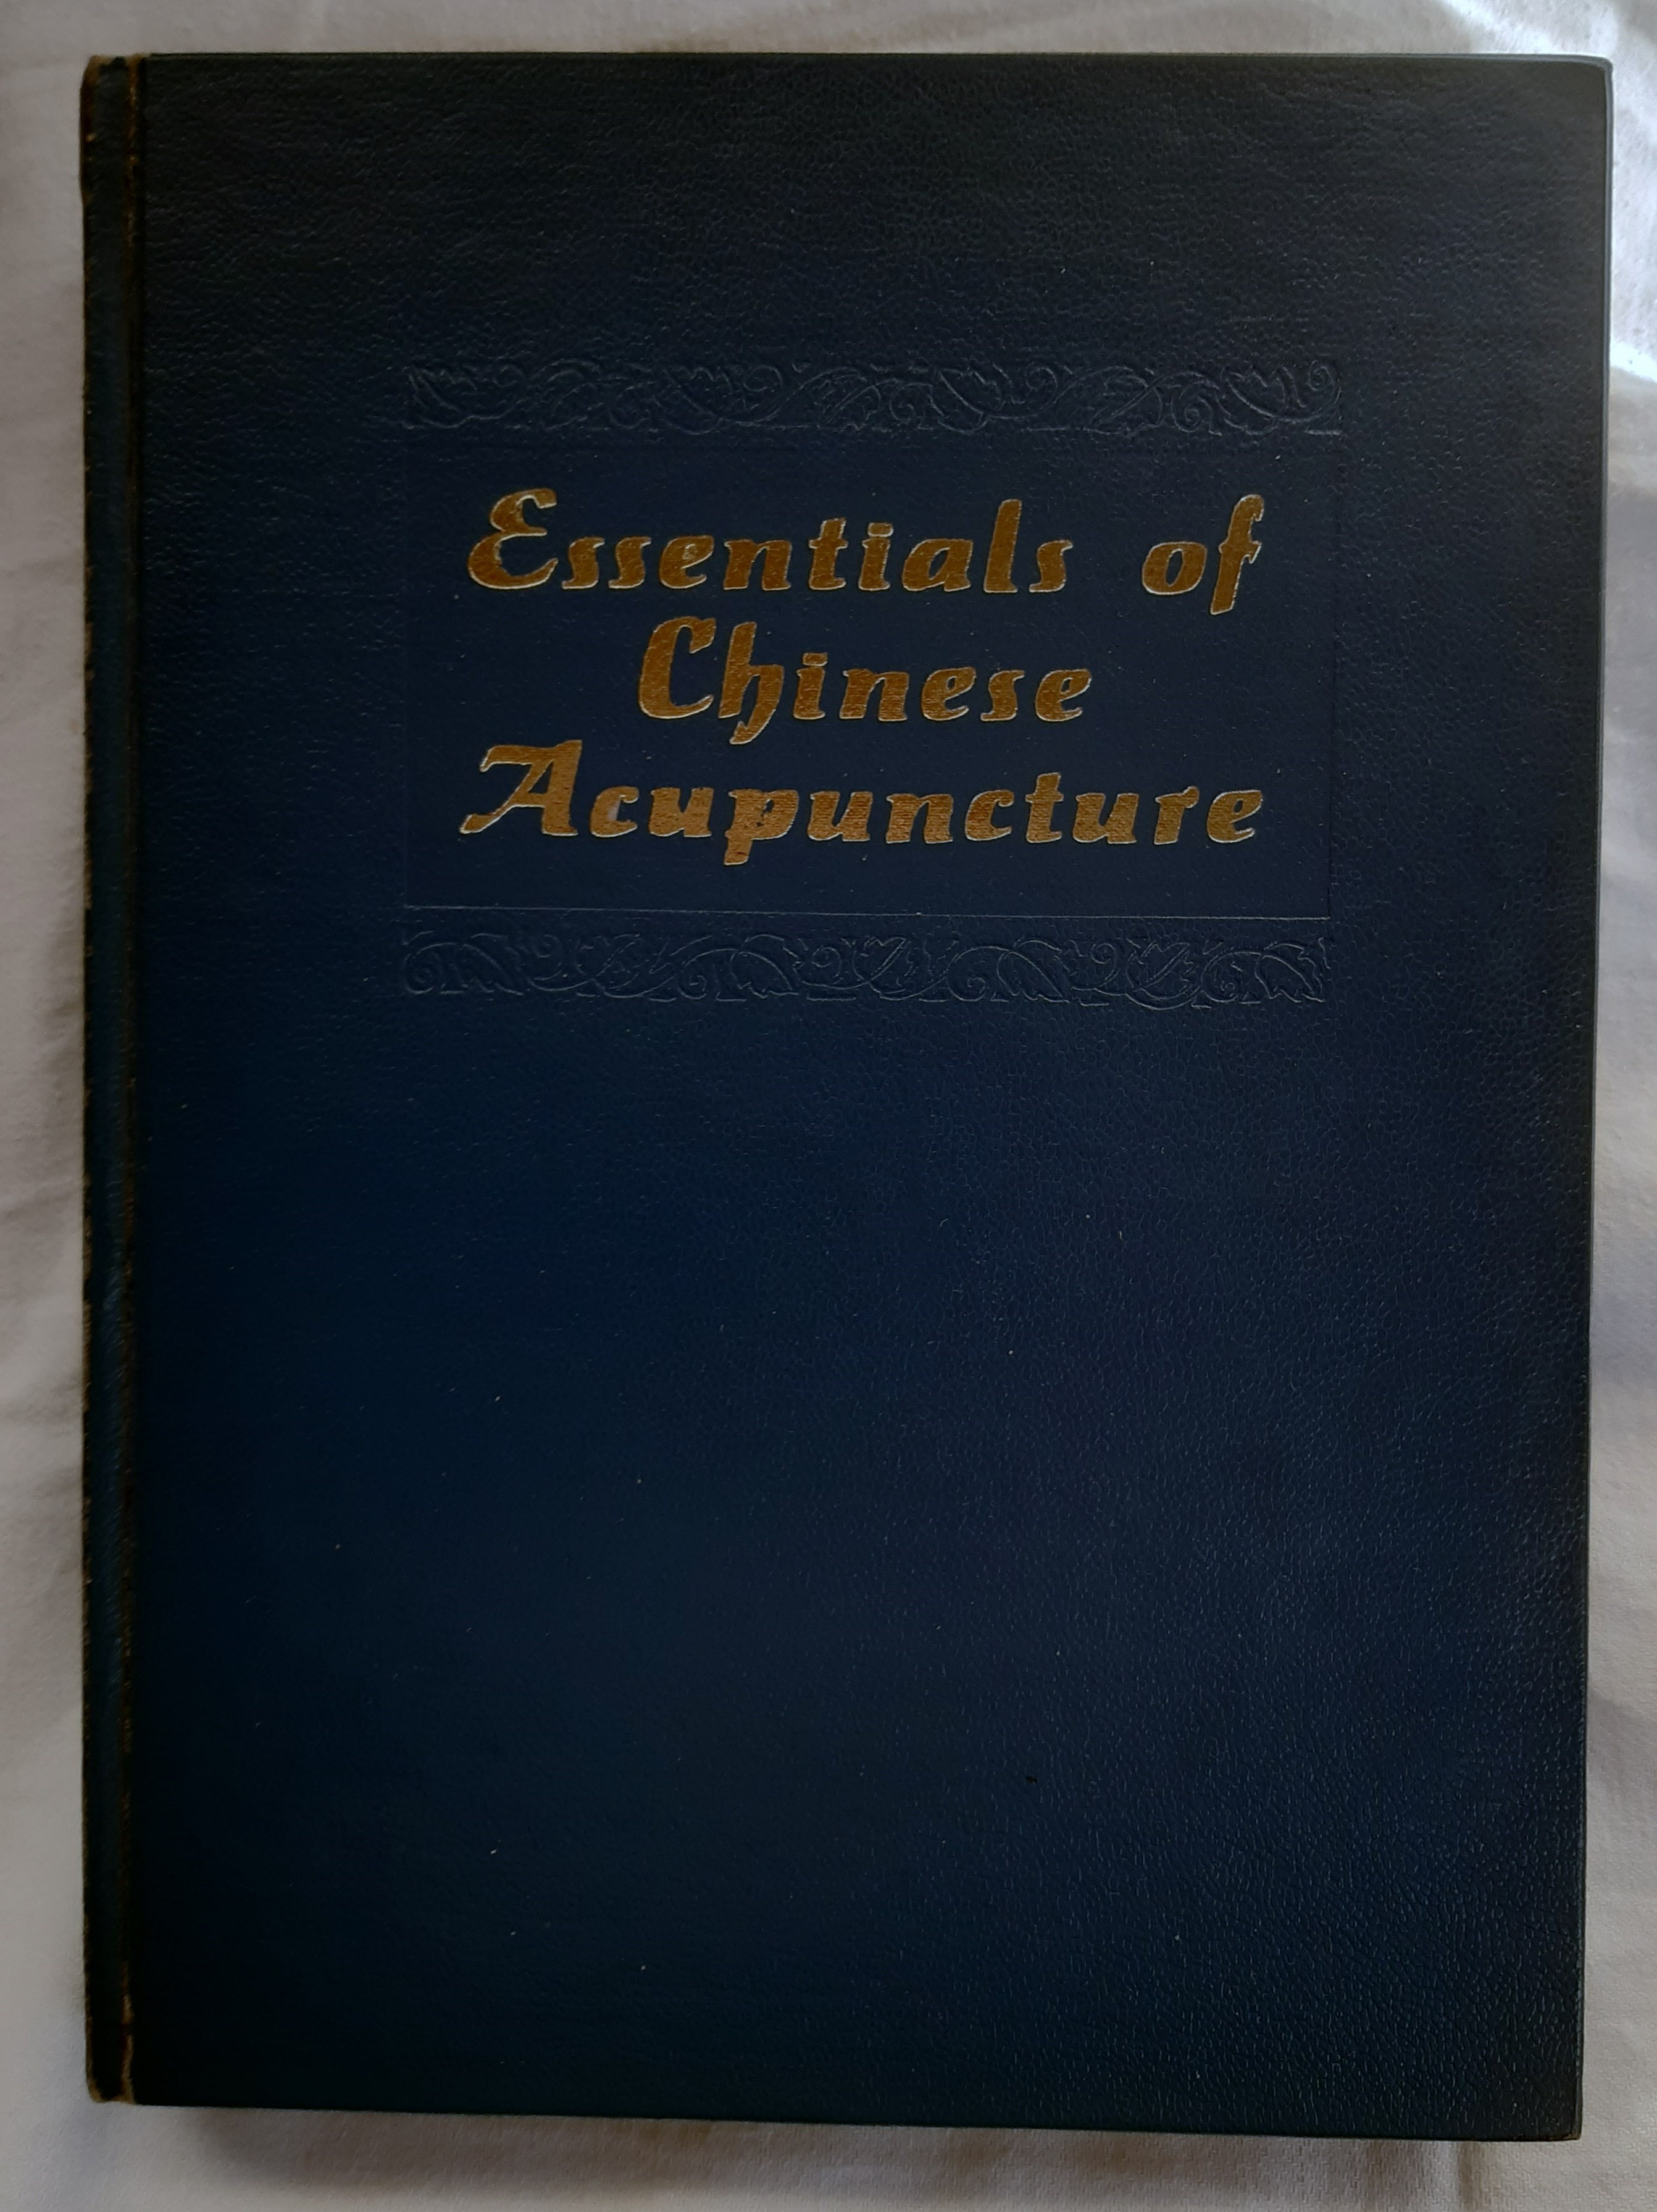 Essentials of Chinesse Acupuncture